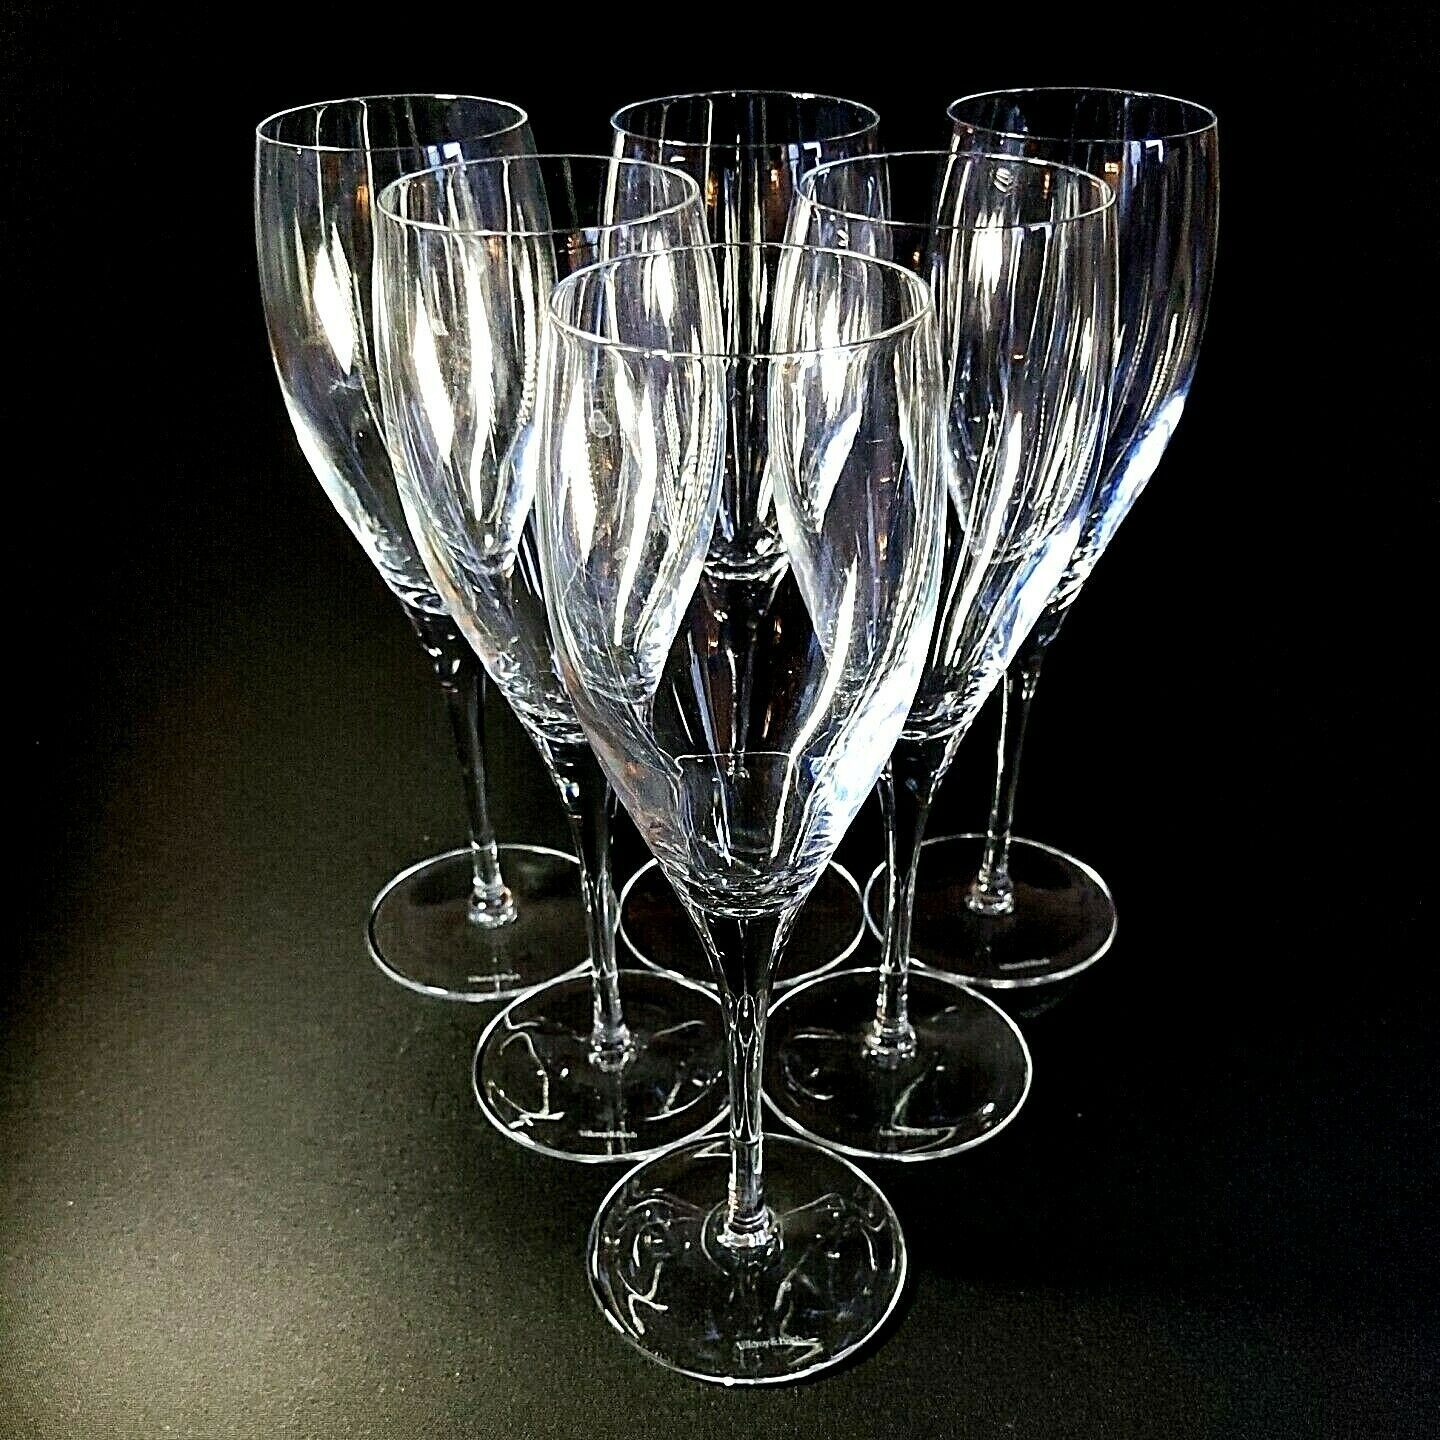 6 (Six) VILLEROY & BOCH TORINO Hand Blown Crystal Champagne Flutes D/C -Signed